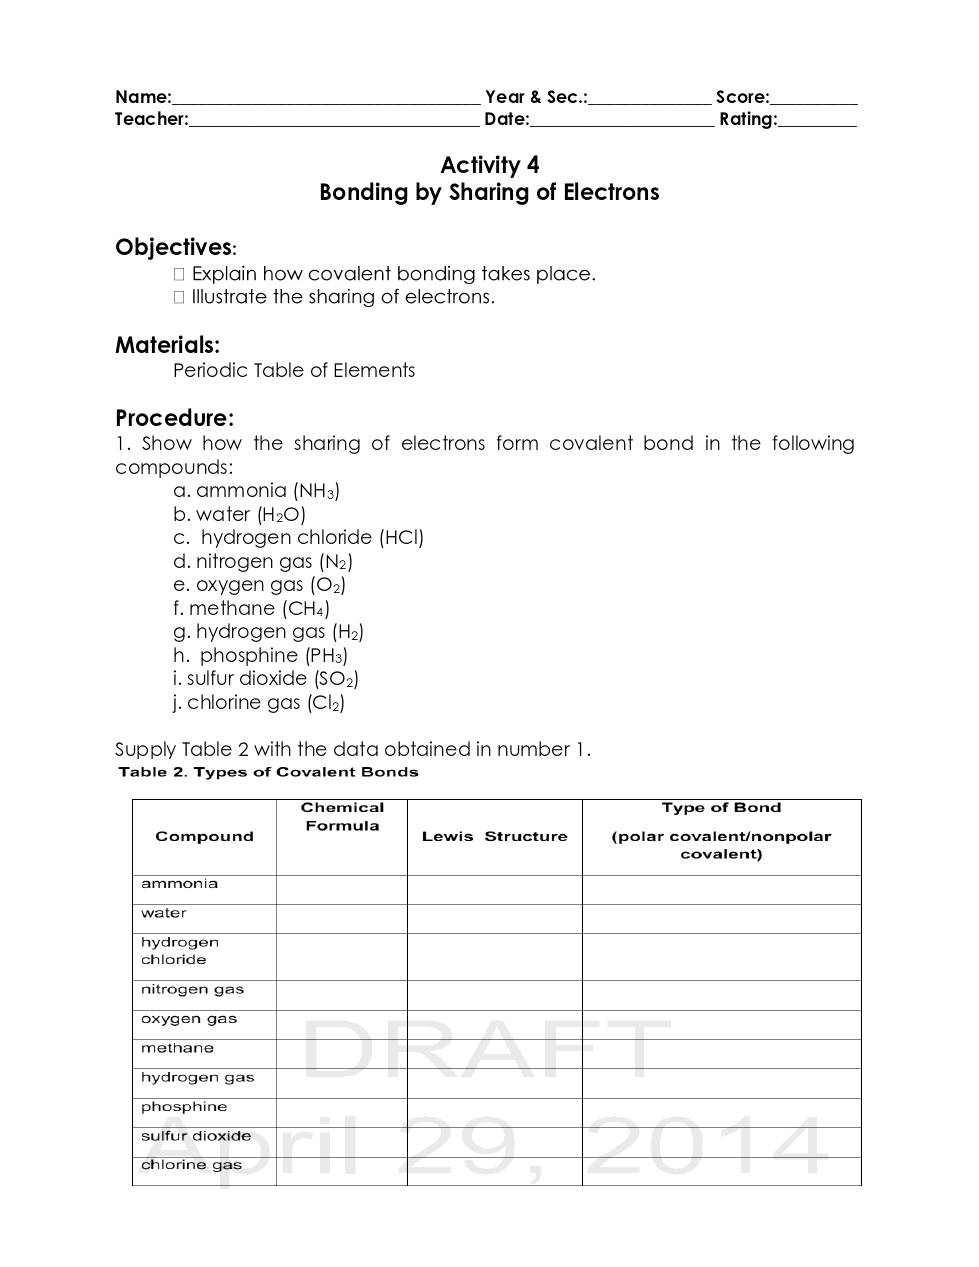 Chemical bonding activities copy dochub page 1 of 12 urtaz Choice Image